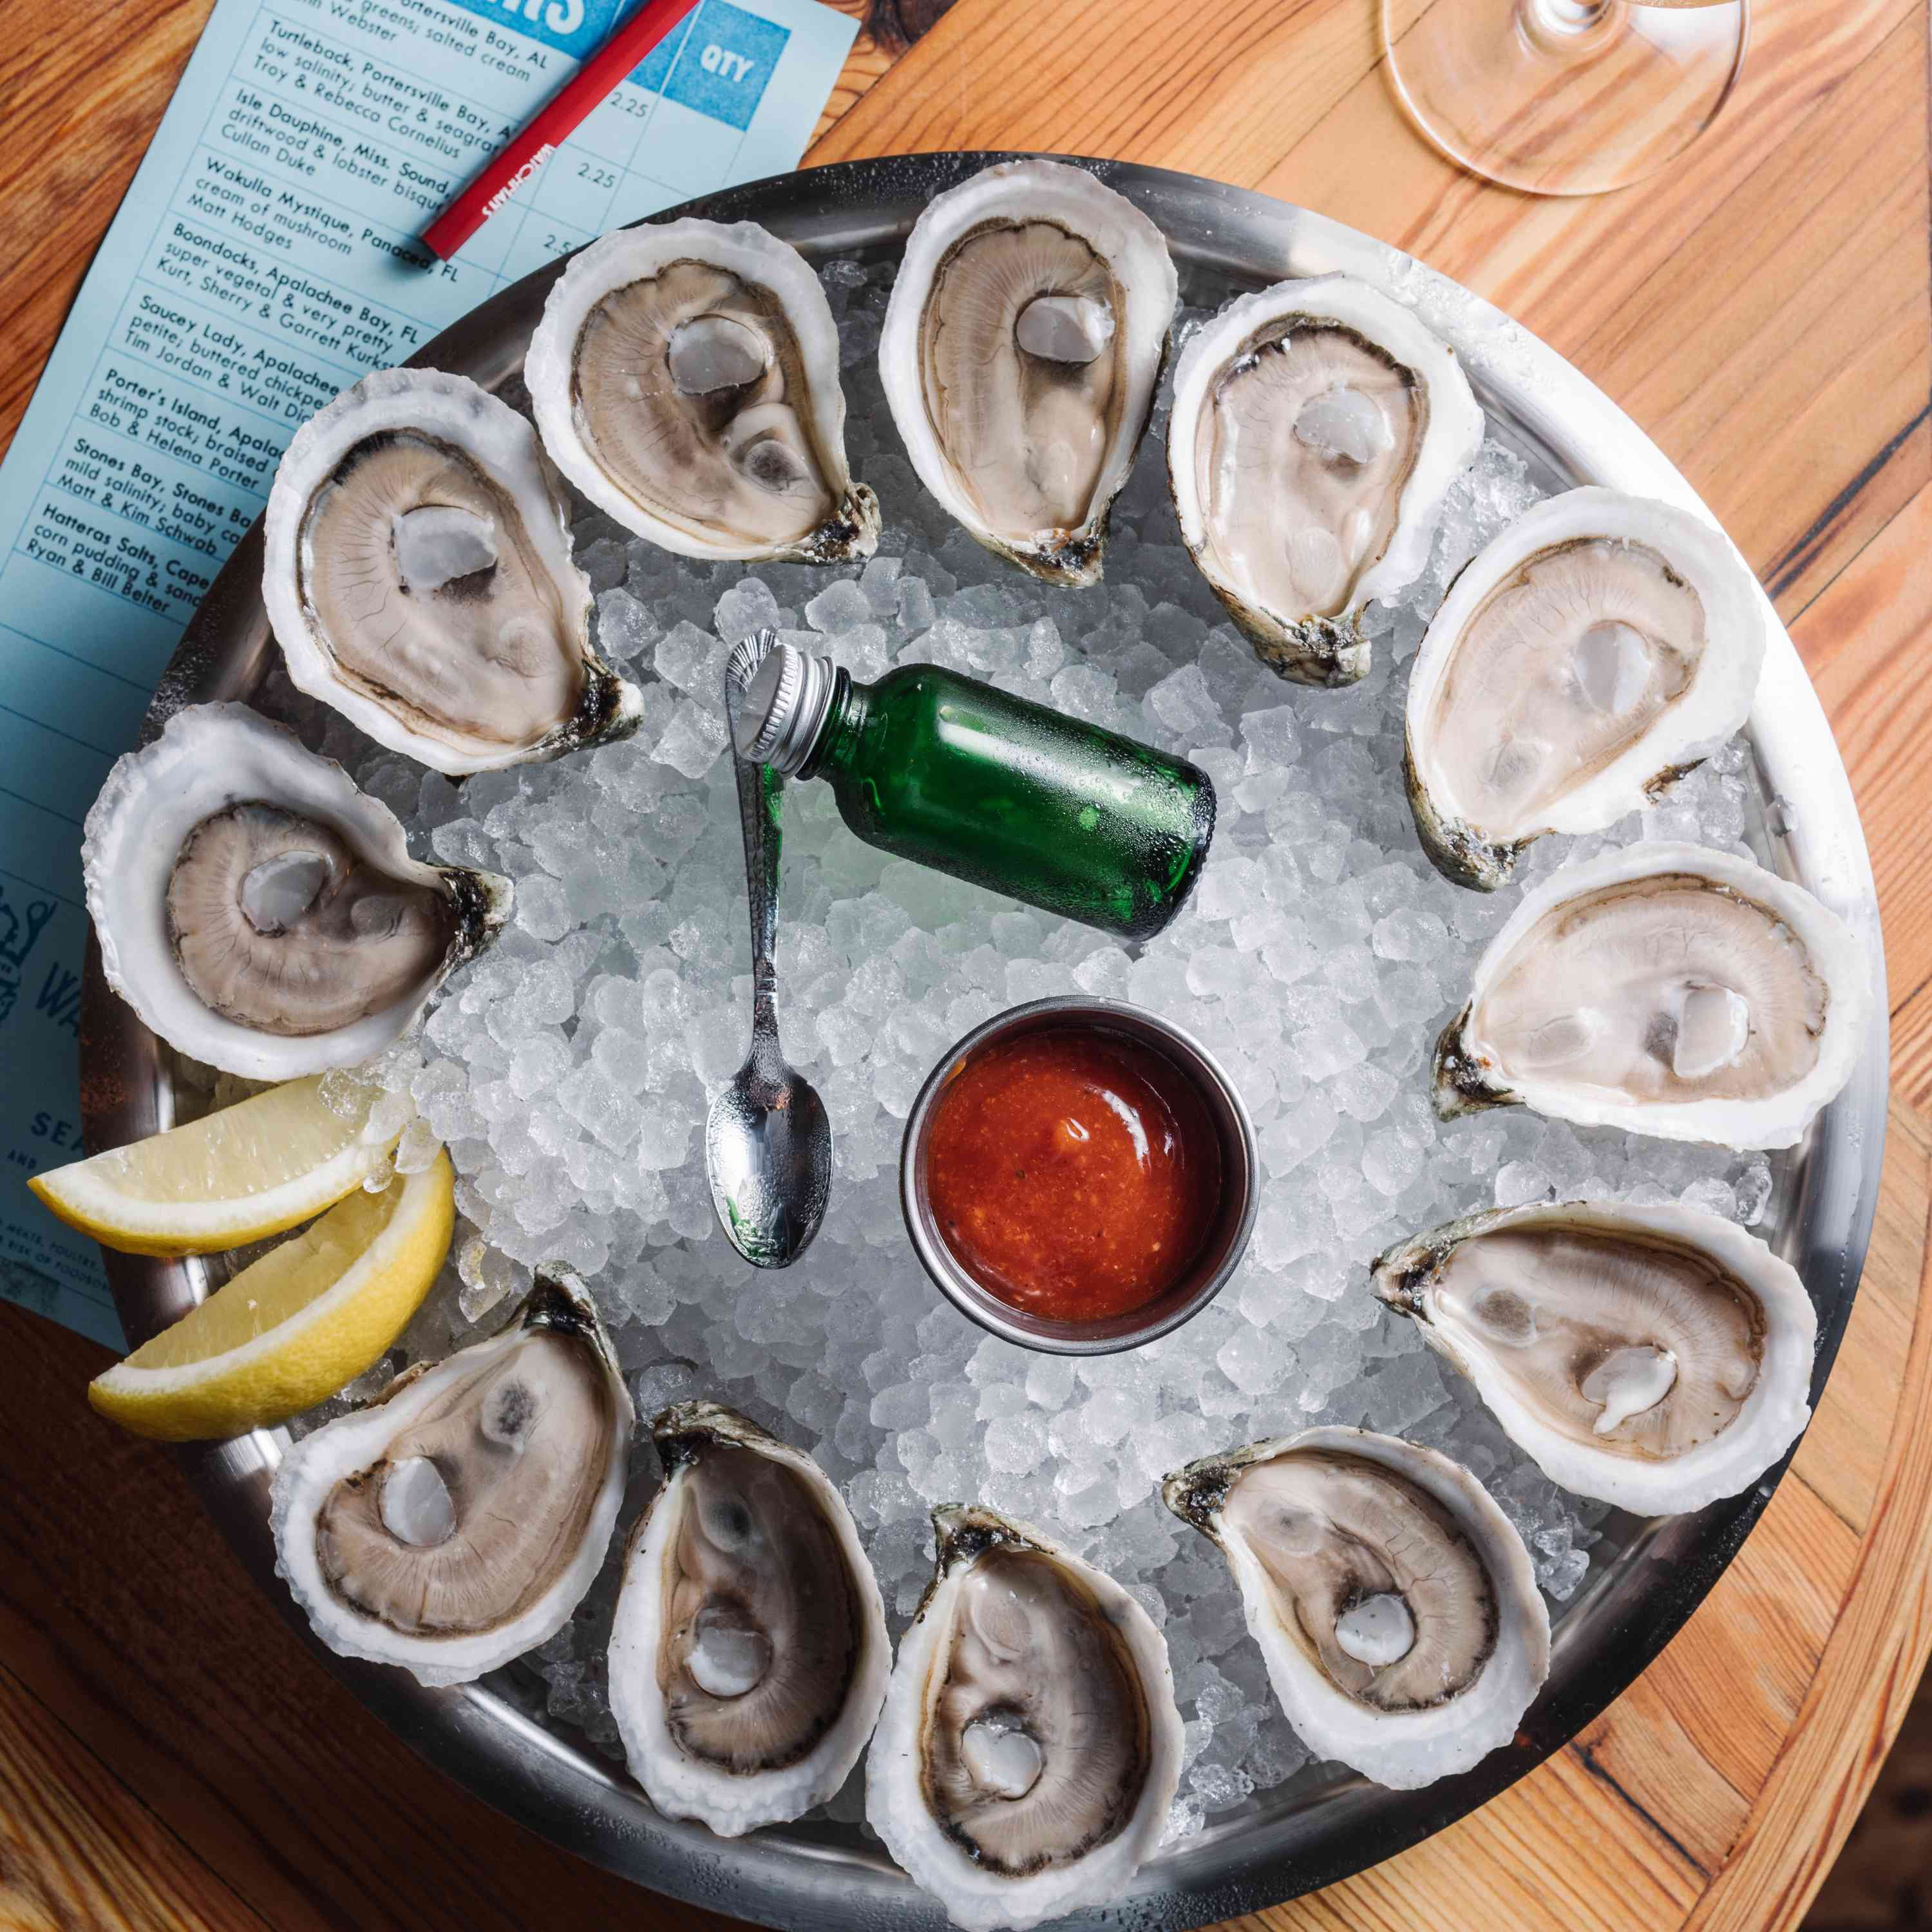 12 raw oysters arranged on the edge of an ice filled bowl with two lemont slices and cocktail sauce, a small spoon and a small, green bottle in the middle